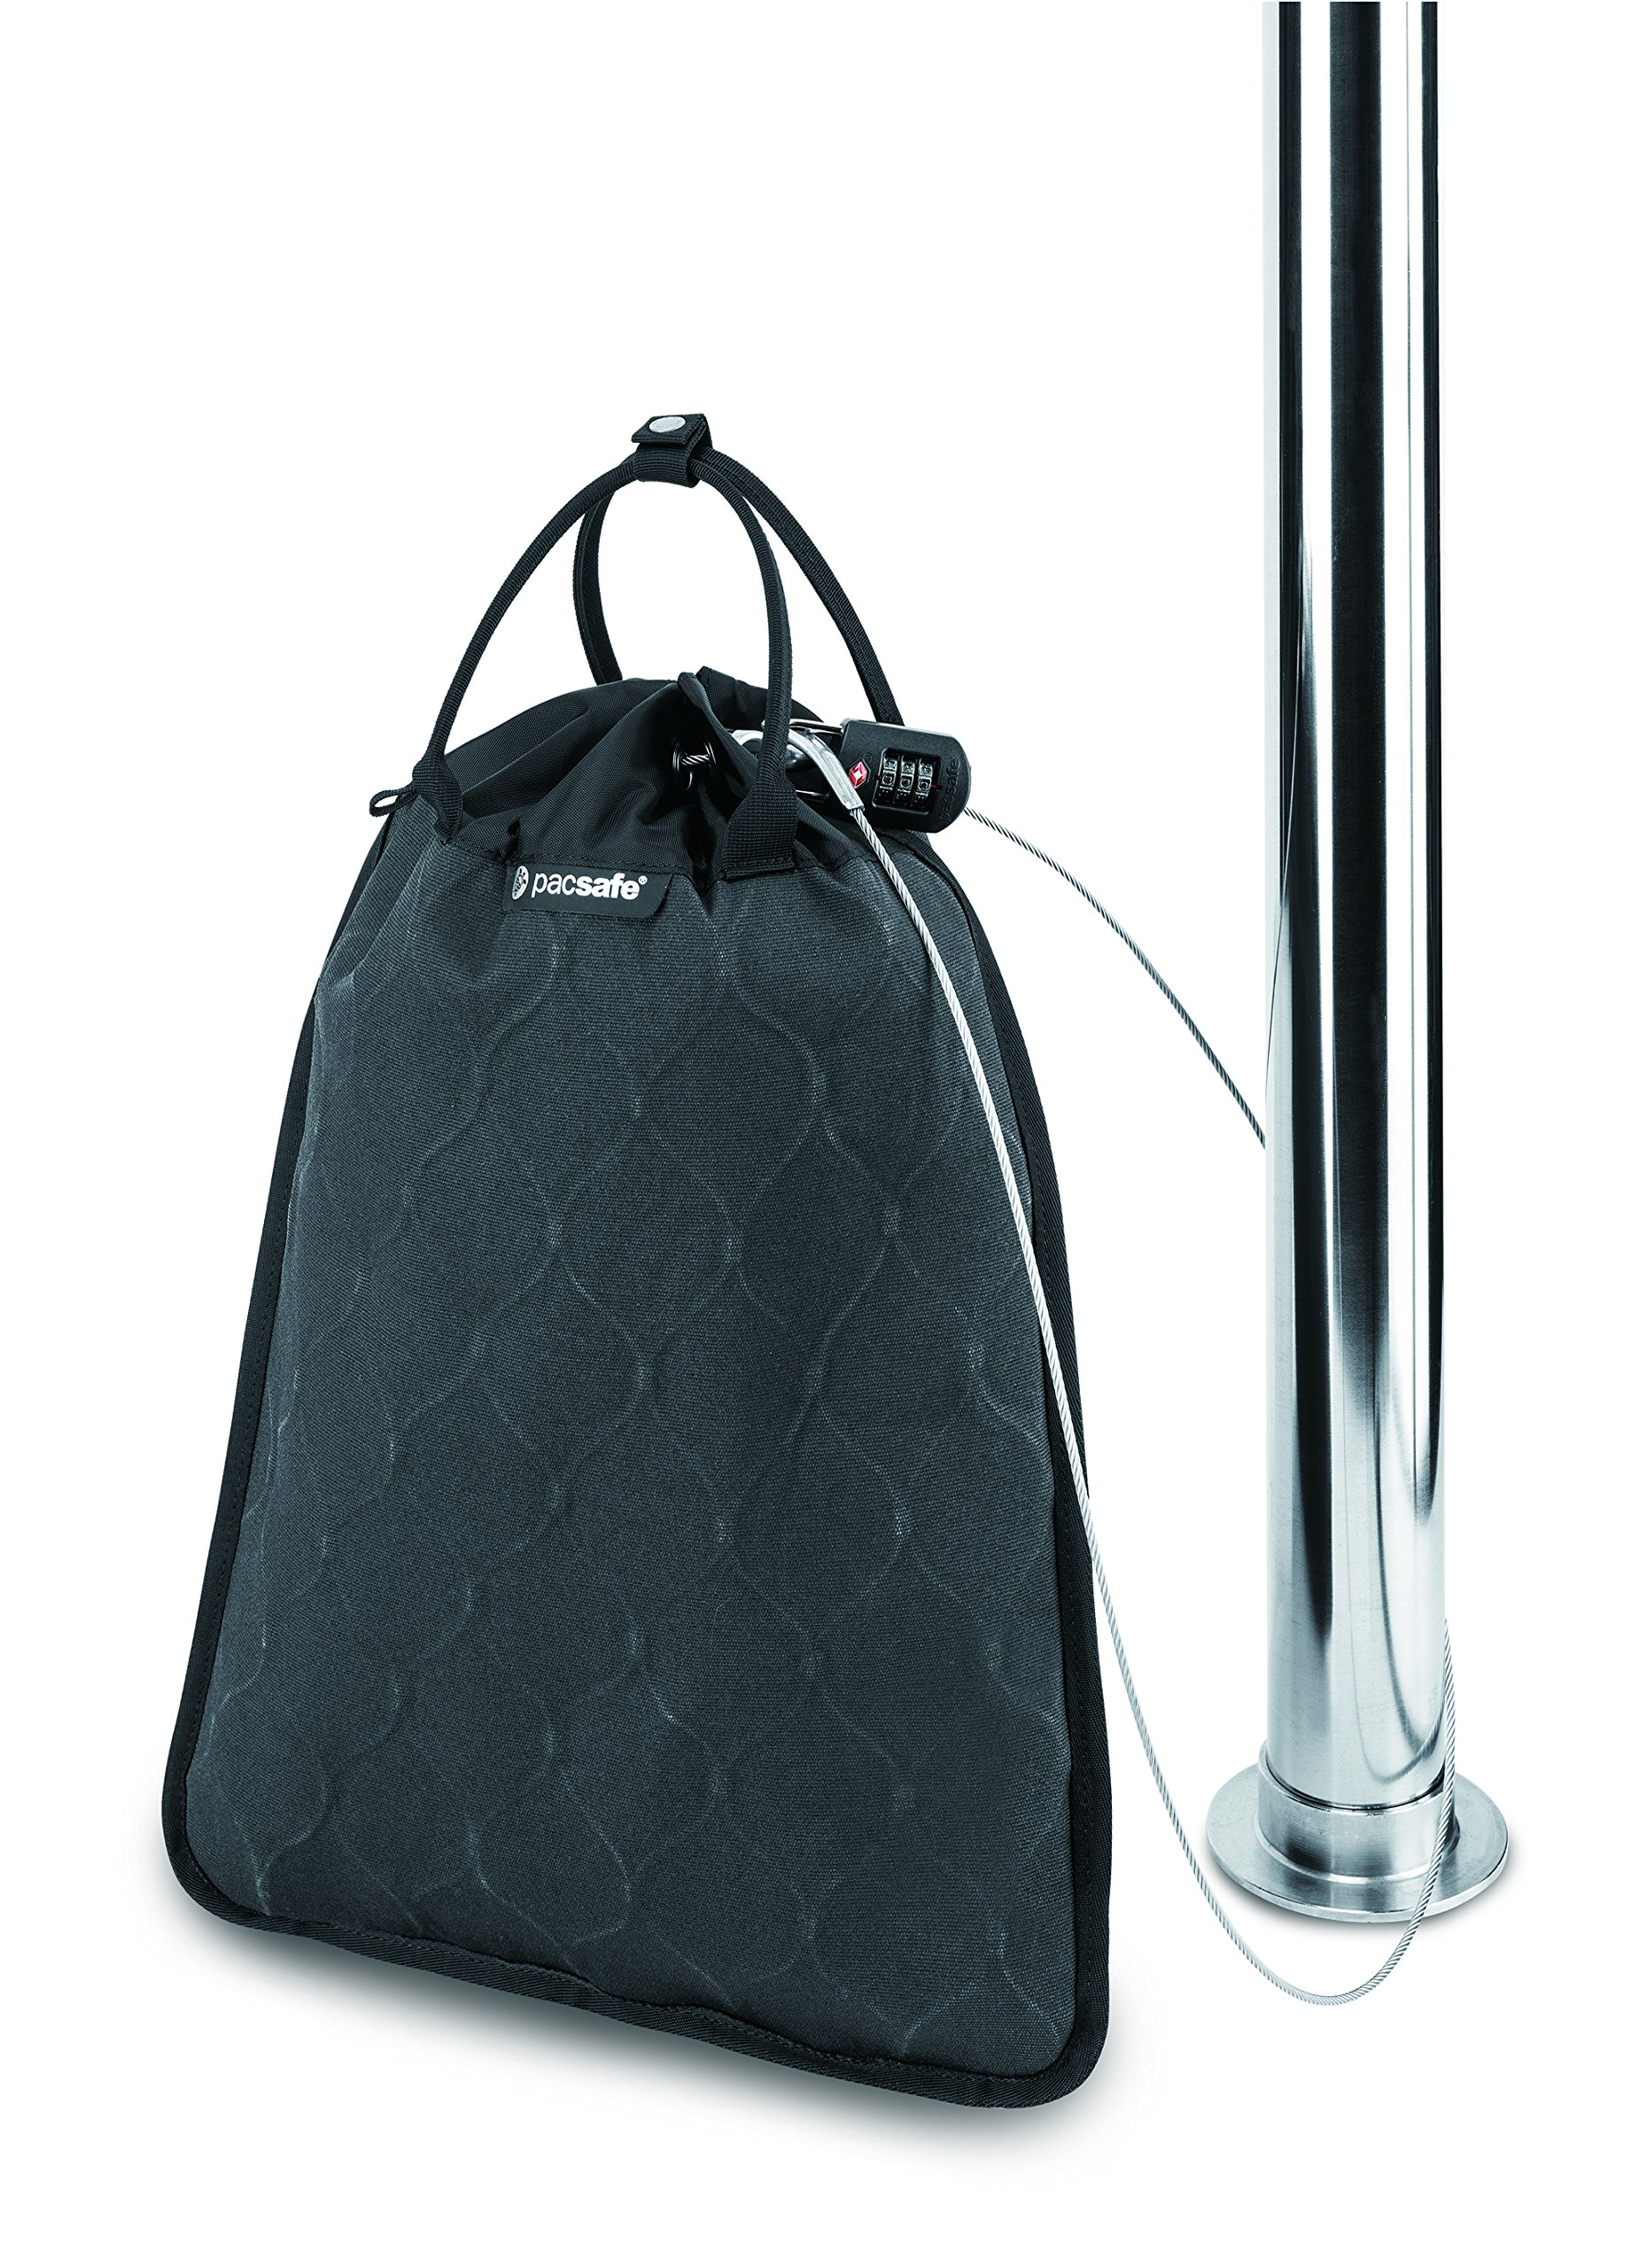 Pacsafe Travelsafe 12L GII Portable Safe, Charcoal by Pacsafe (Image #9)